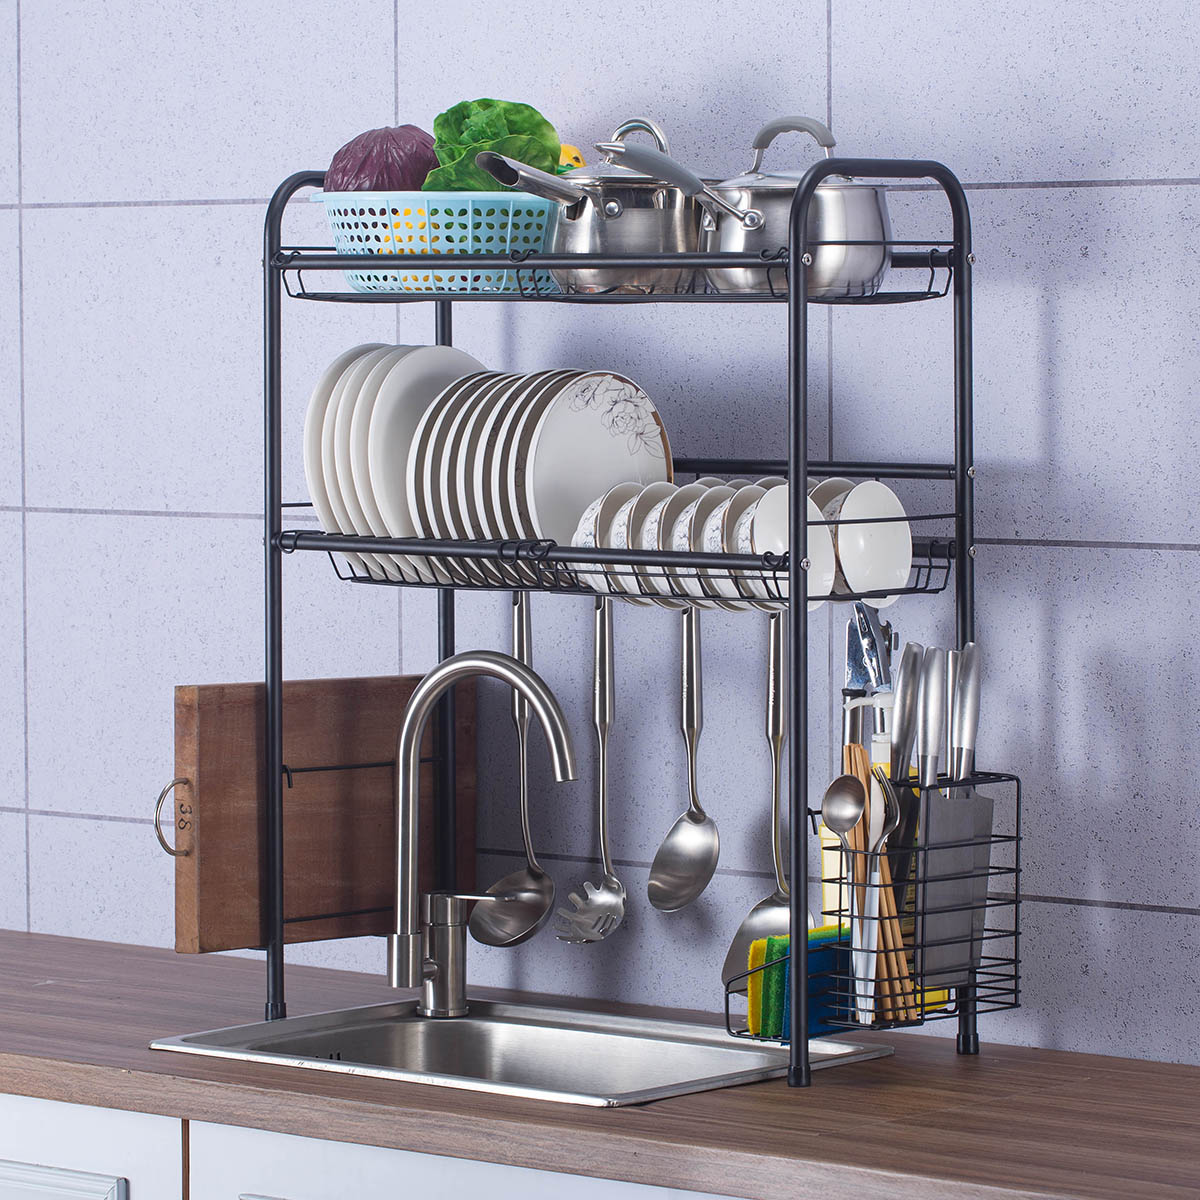 stainless steel dish drying rack over sink drain rack for home kitchen counter space saving